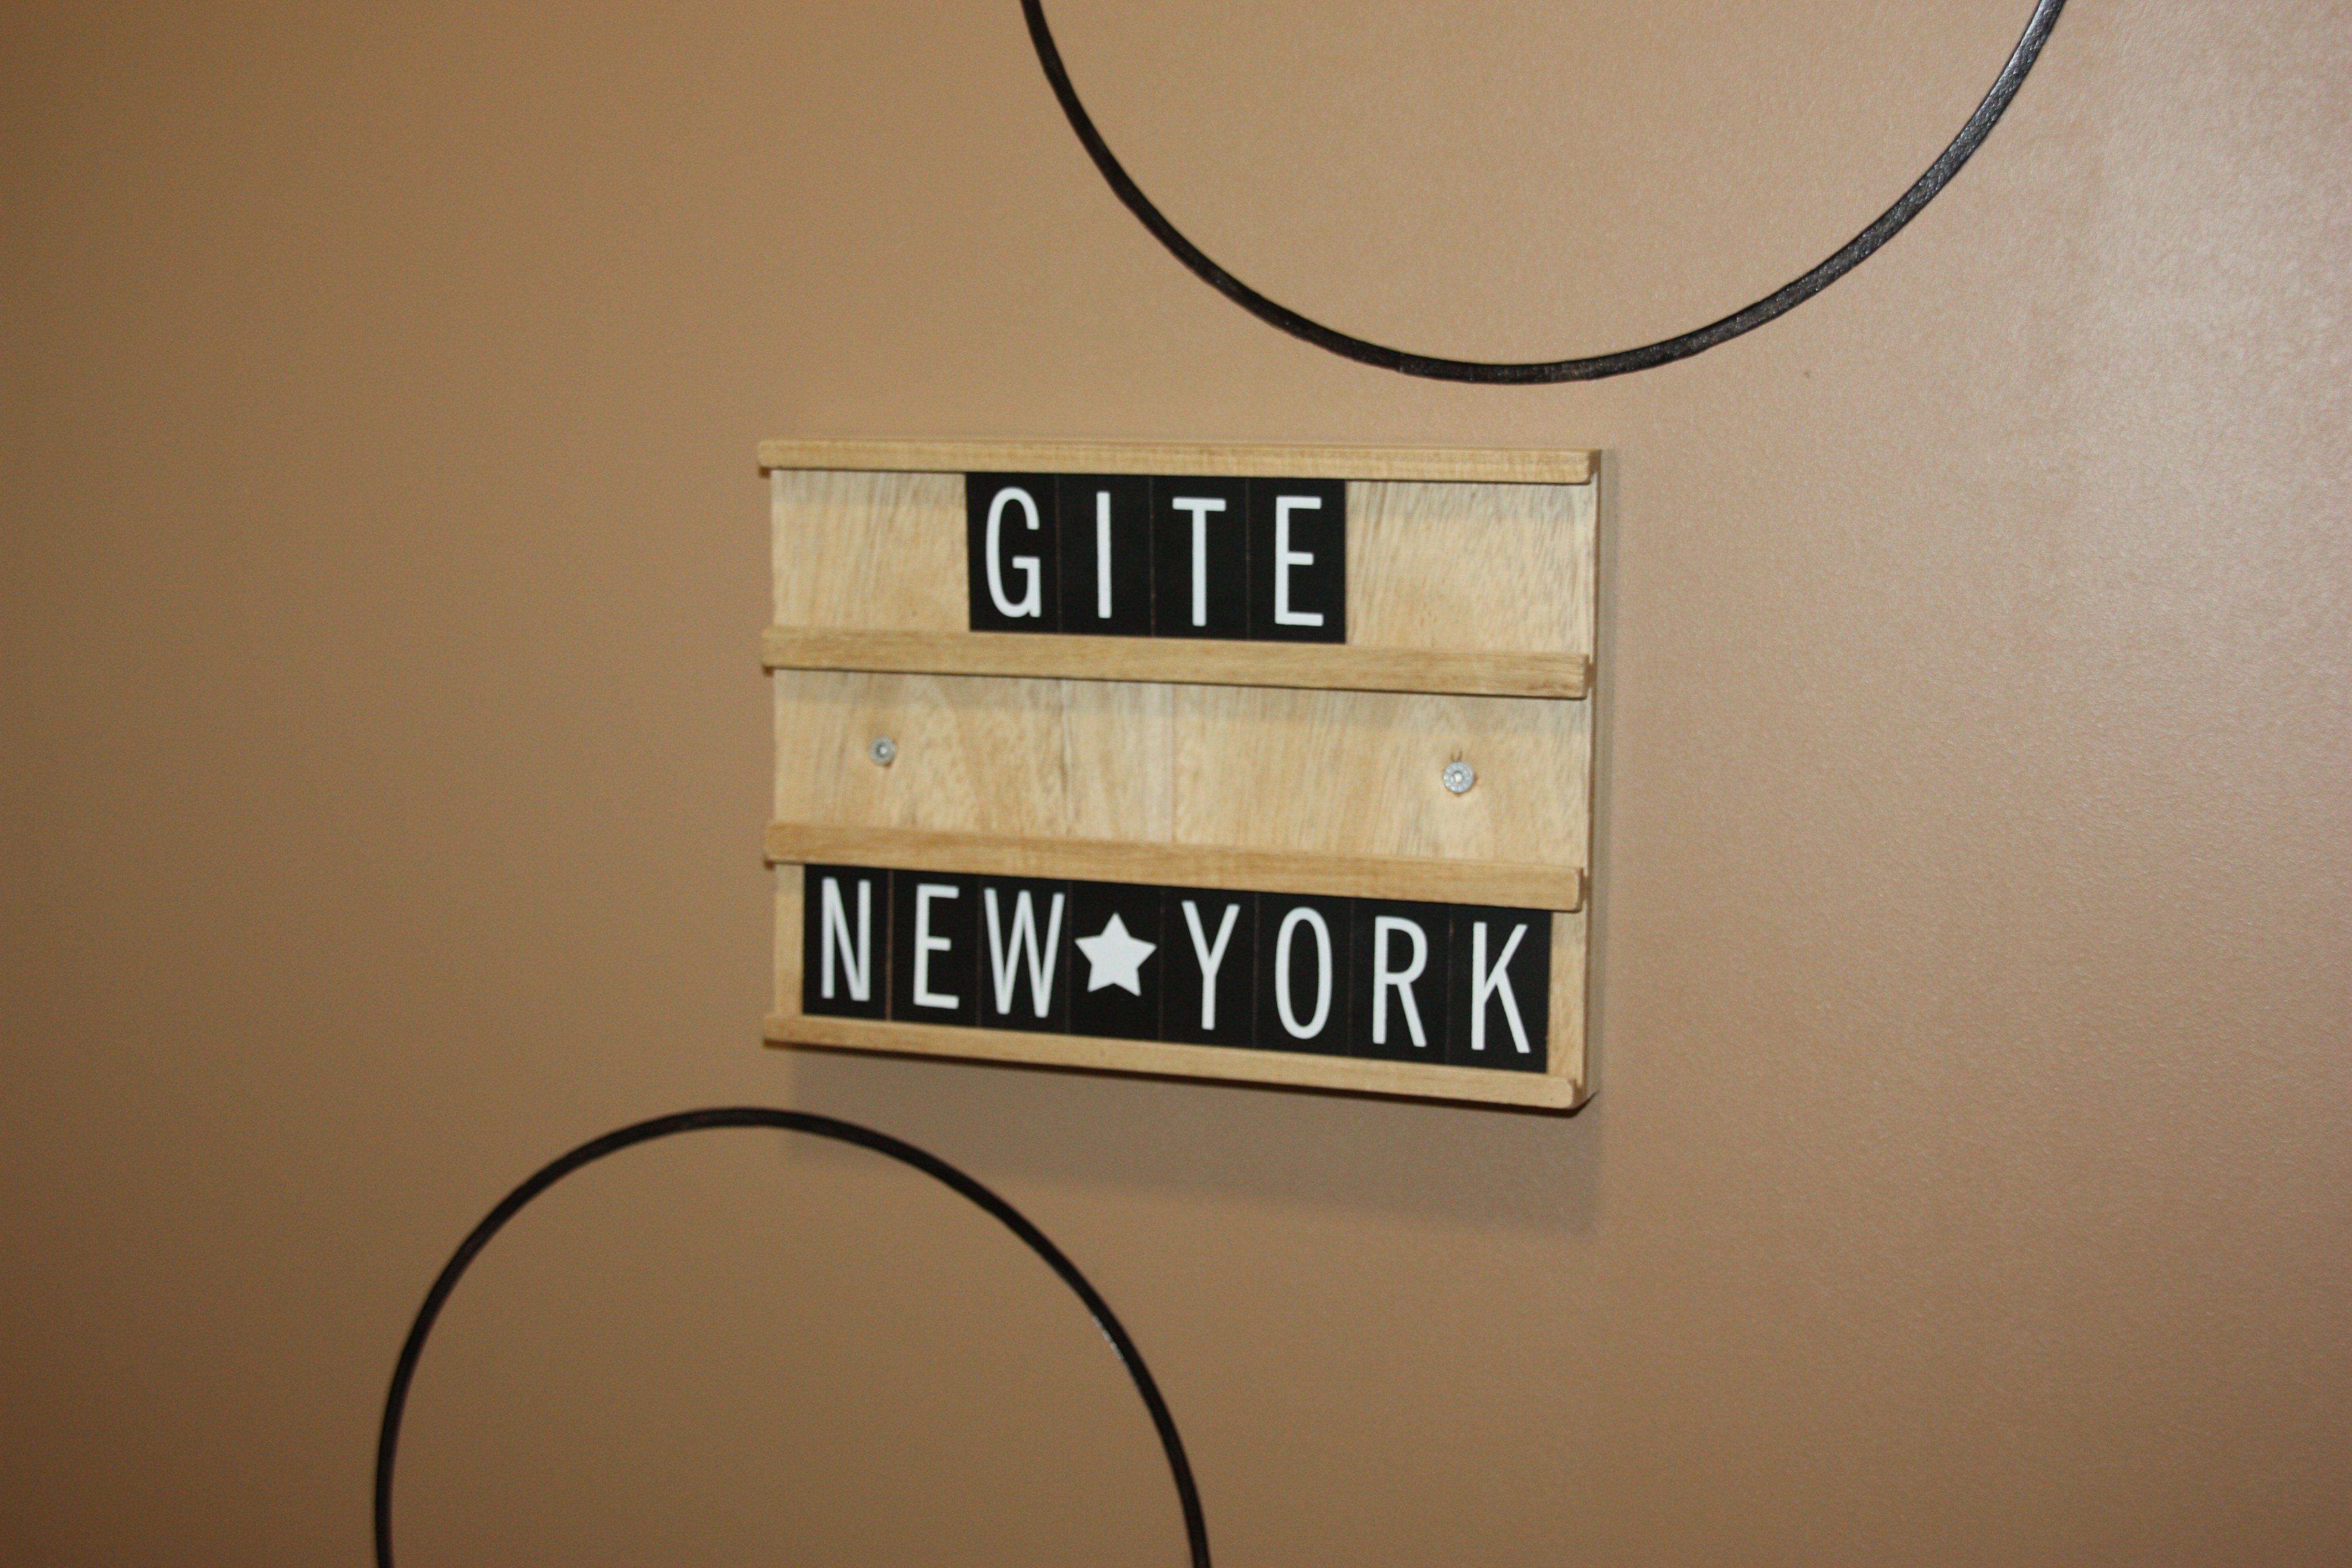 GITE NEW YORK